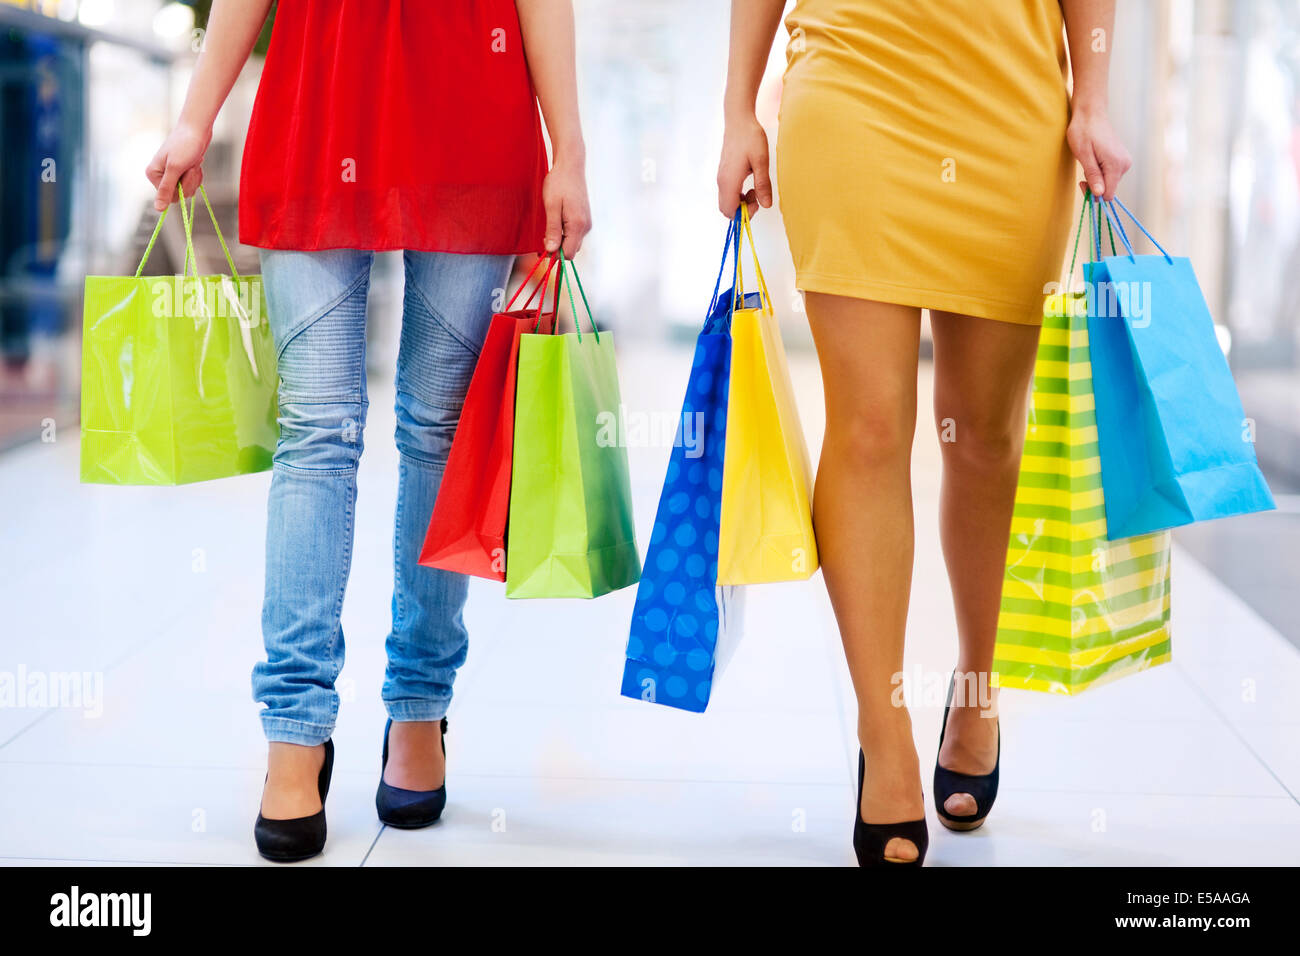 Low angle view of young friends carrying shopping bags. Debica, Poland - Stock Image